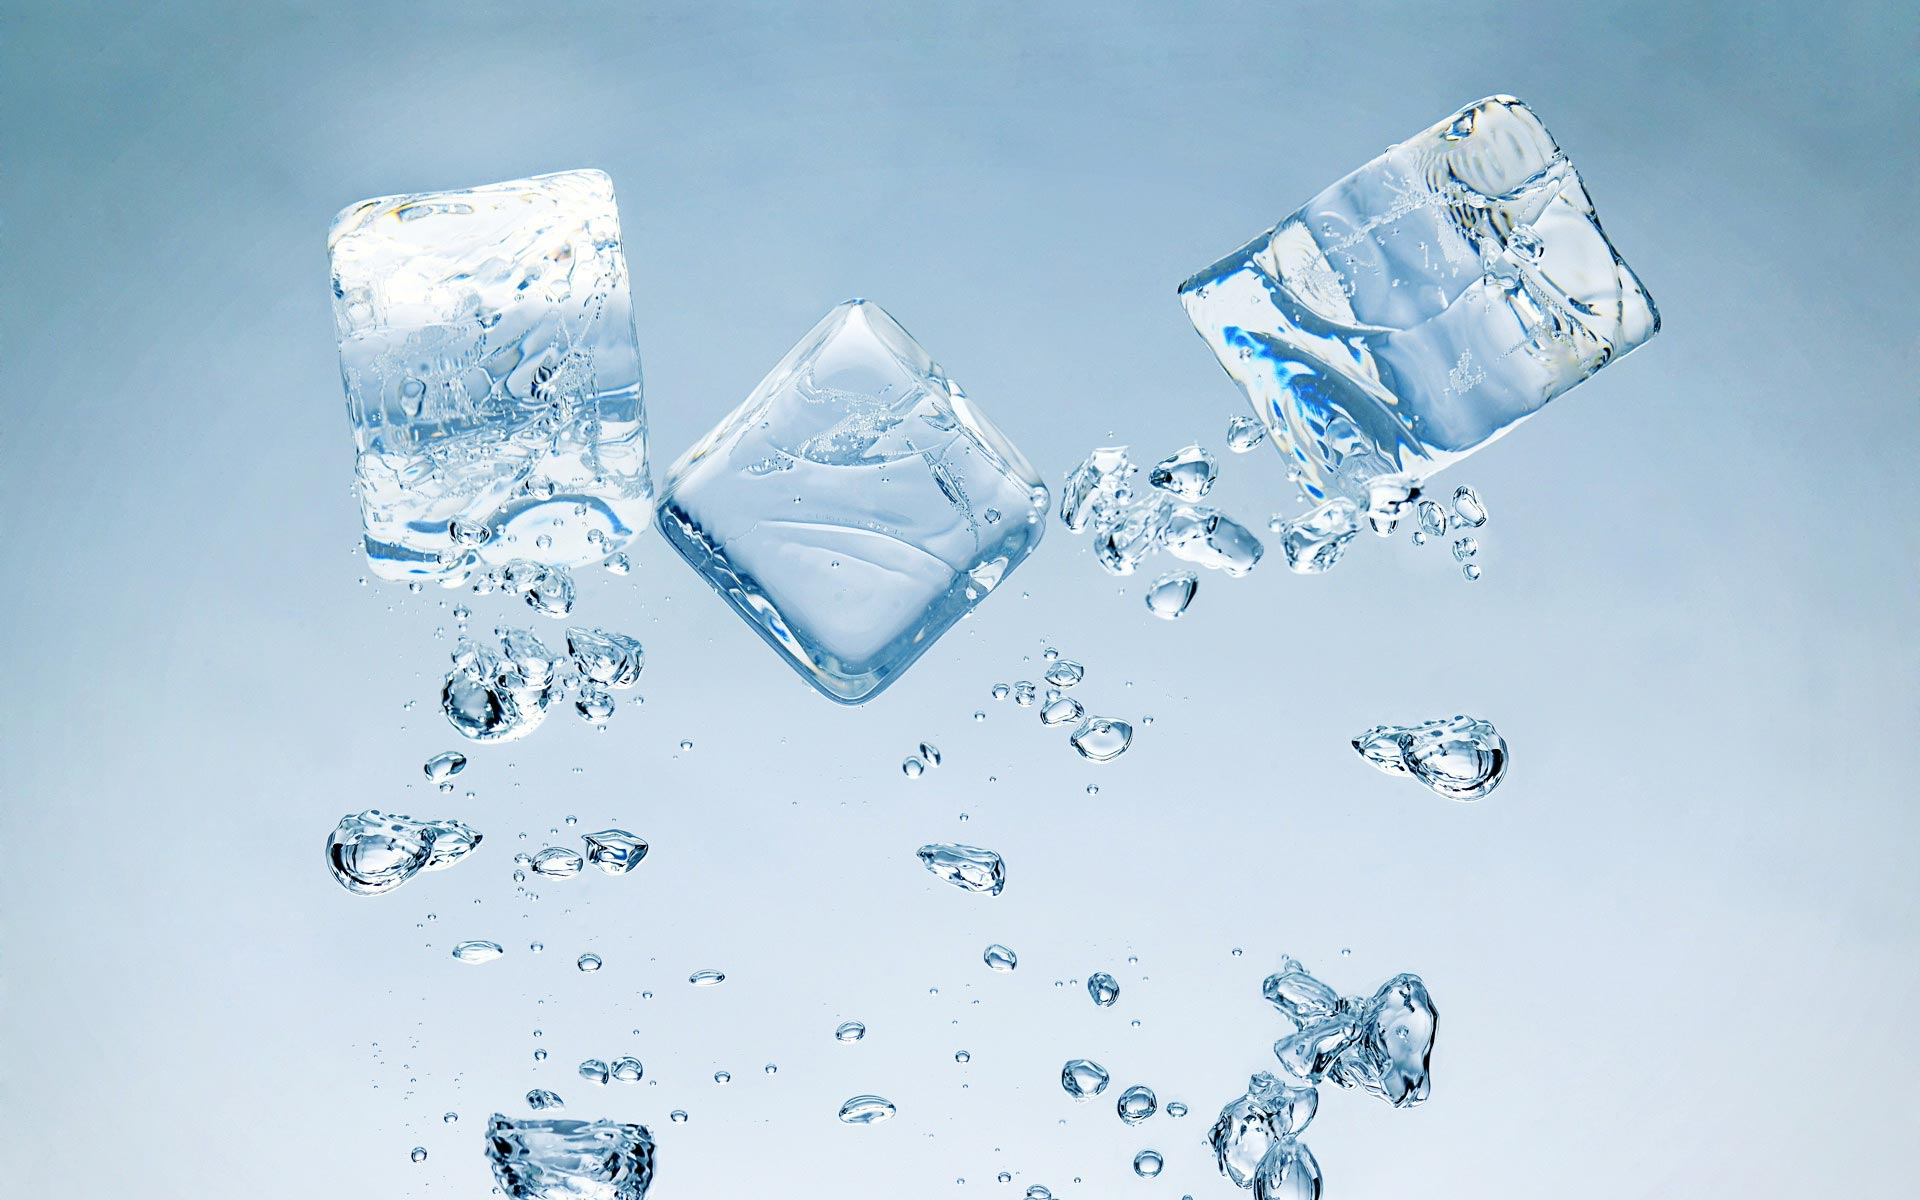 Falling Water Hd Wallpaper Motogp Riders Step Up For The Als Ice Bucket Challenge